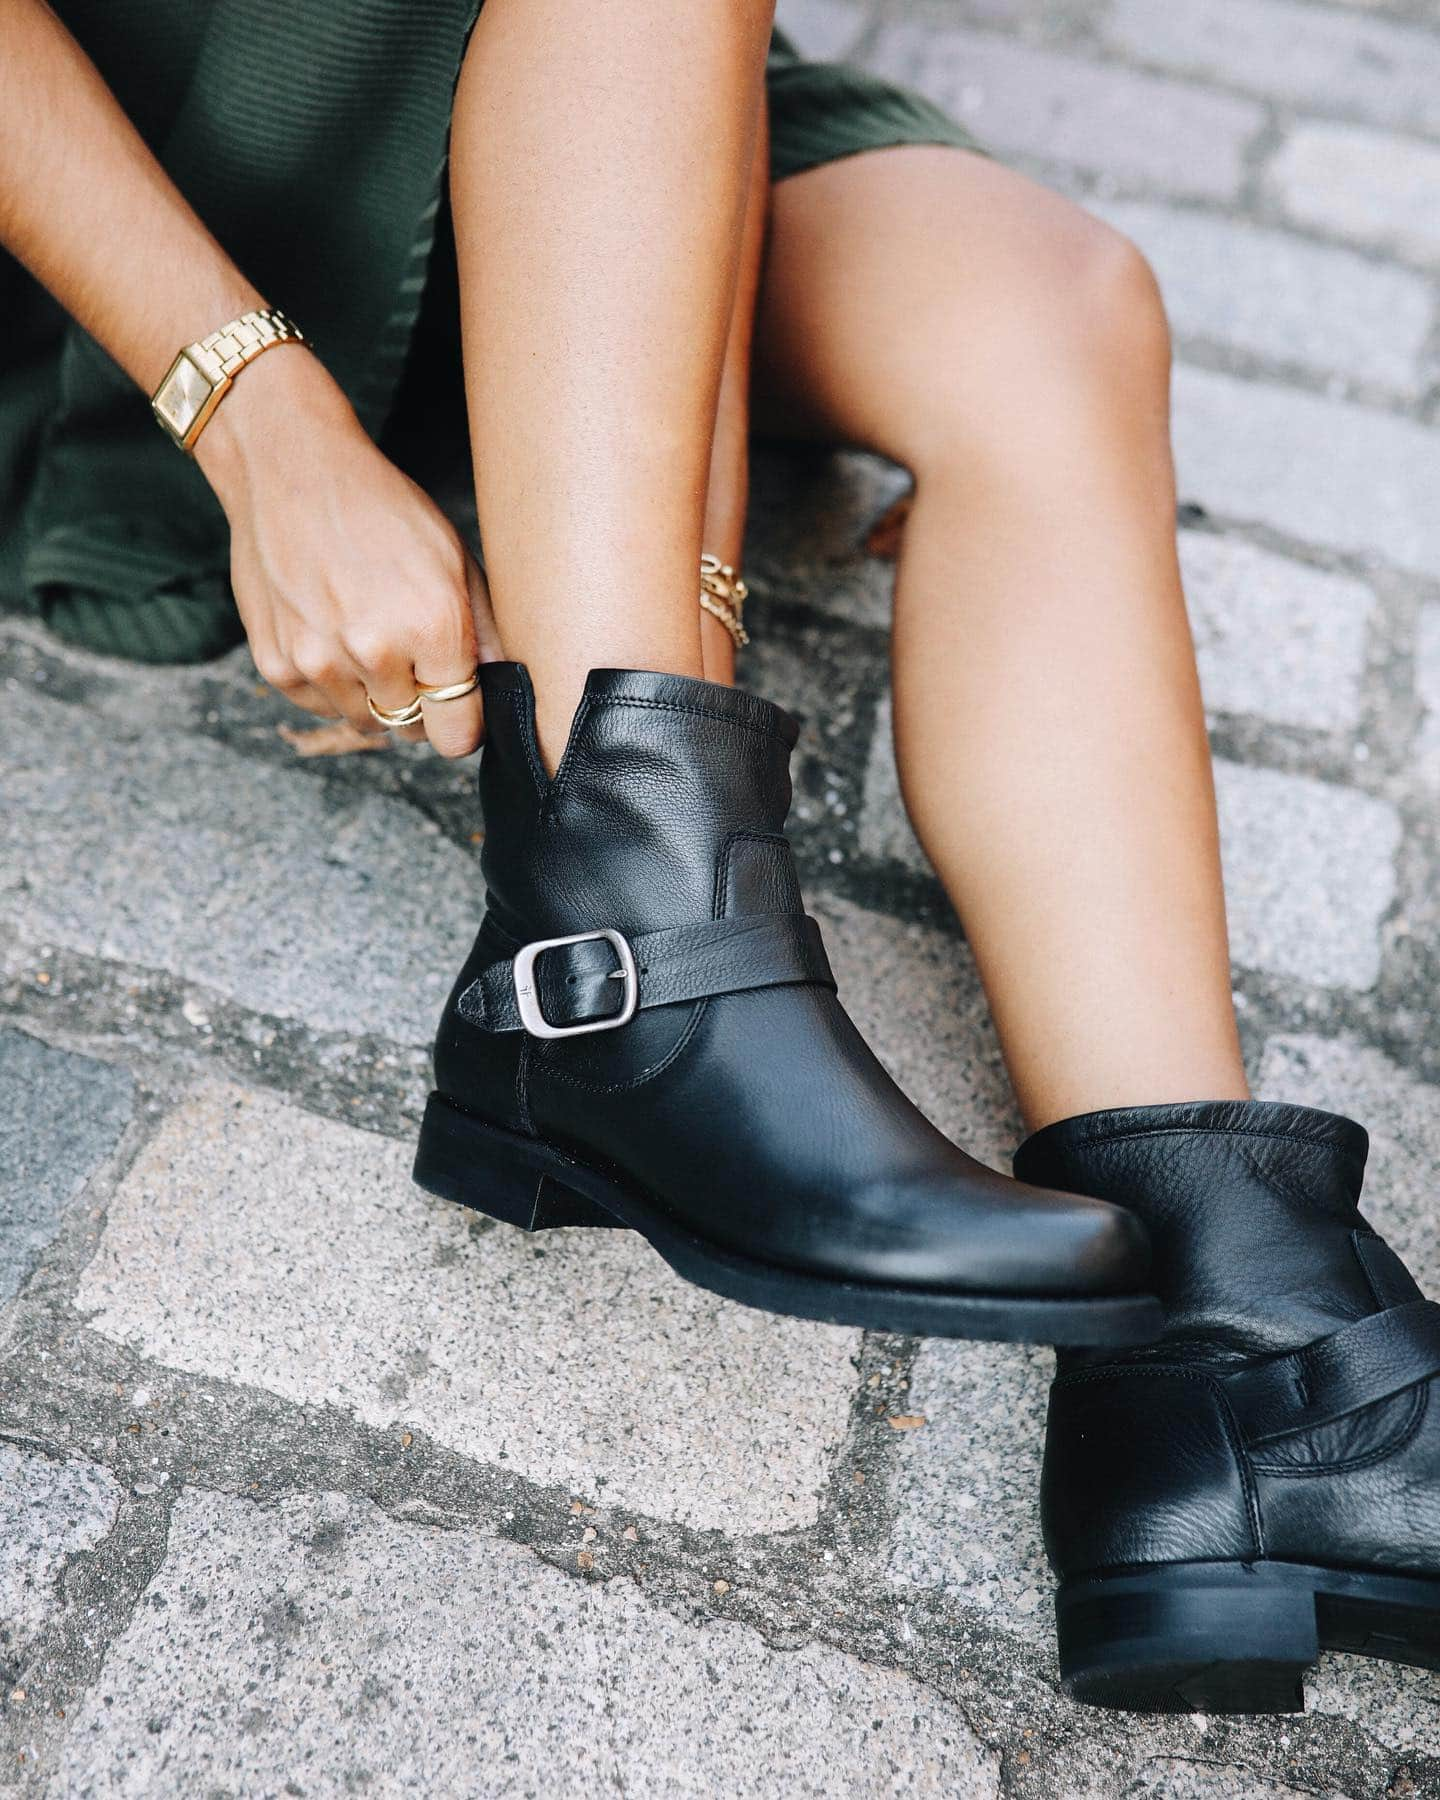 Style, comfort, and quality are just a few of the things you'll love most about Frye's classic Veronica boots